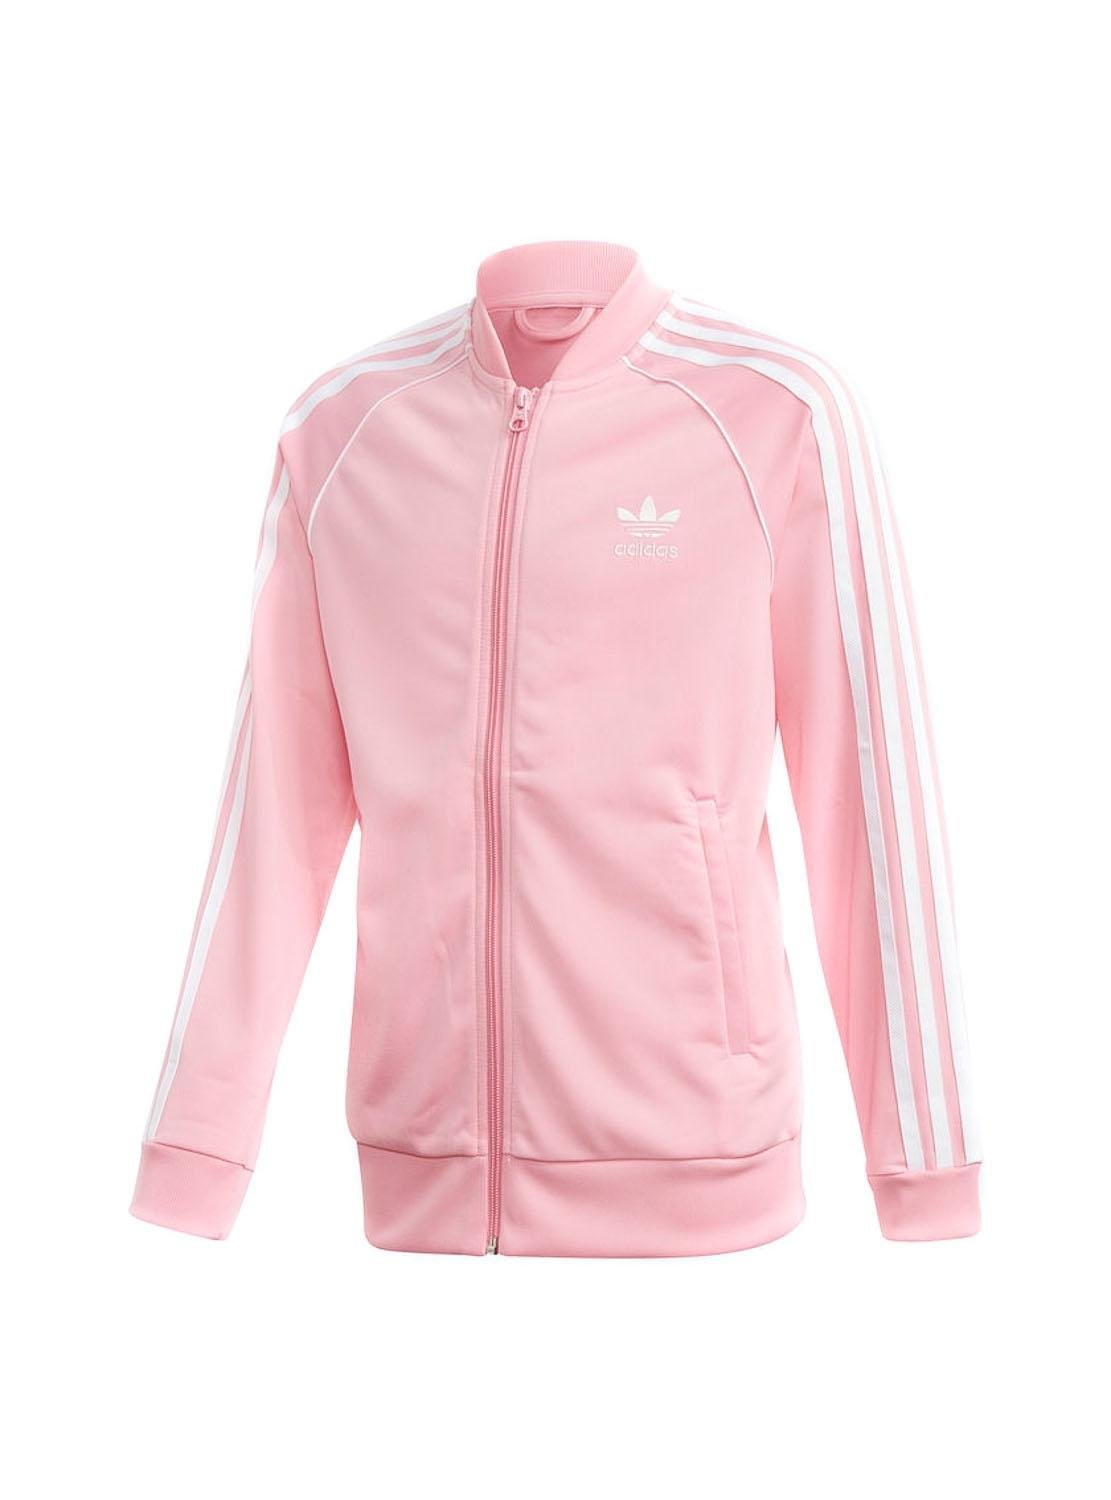 adidas Children's Cf8555 Superstar Track Jacket